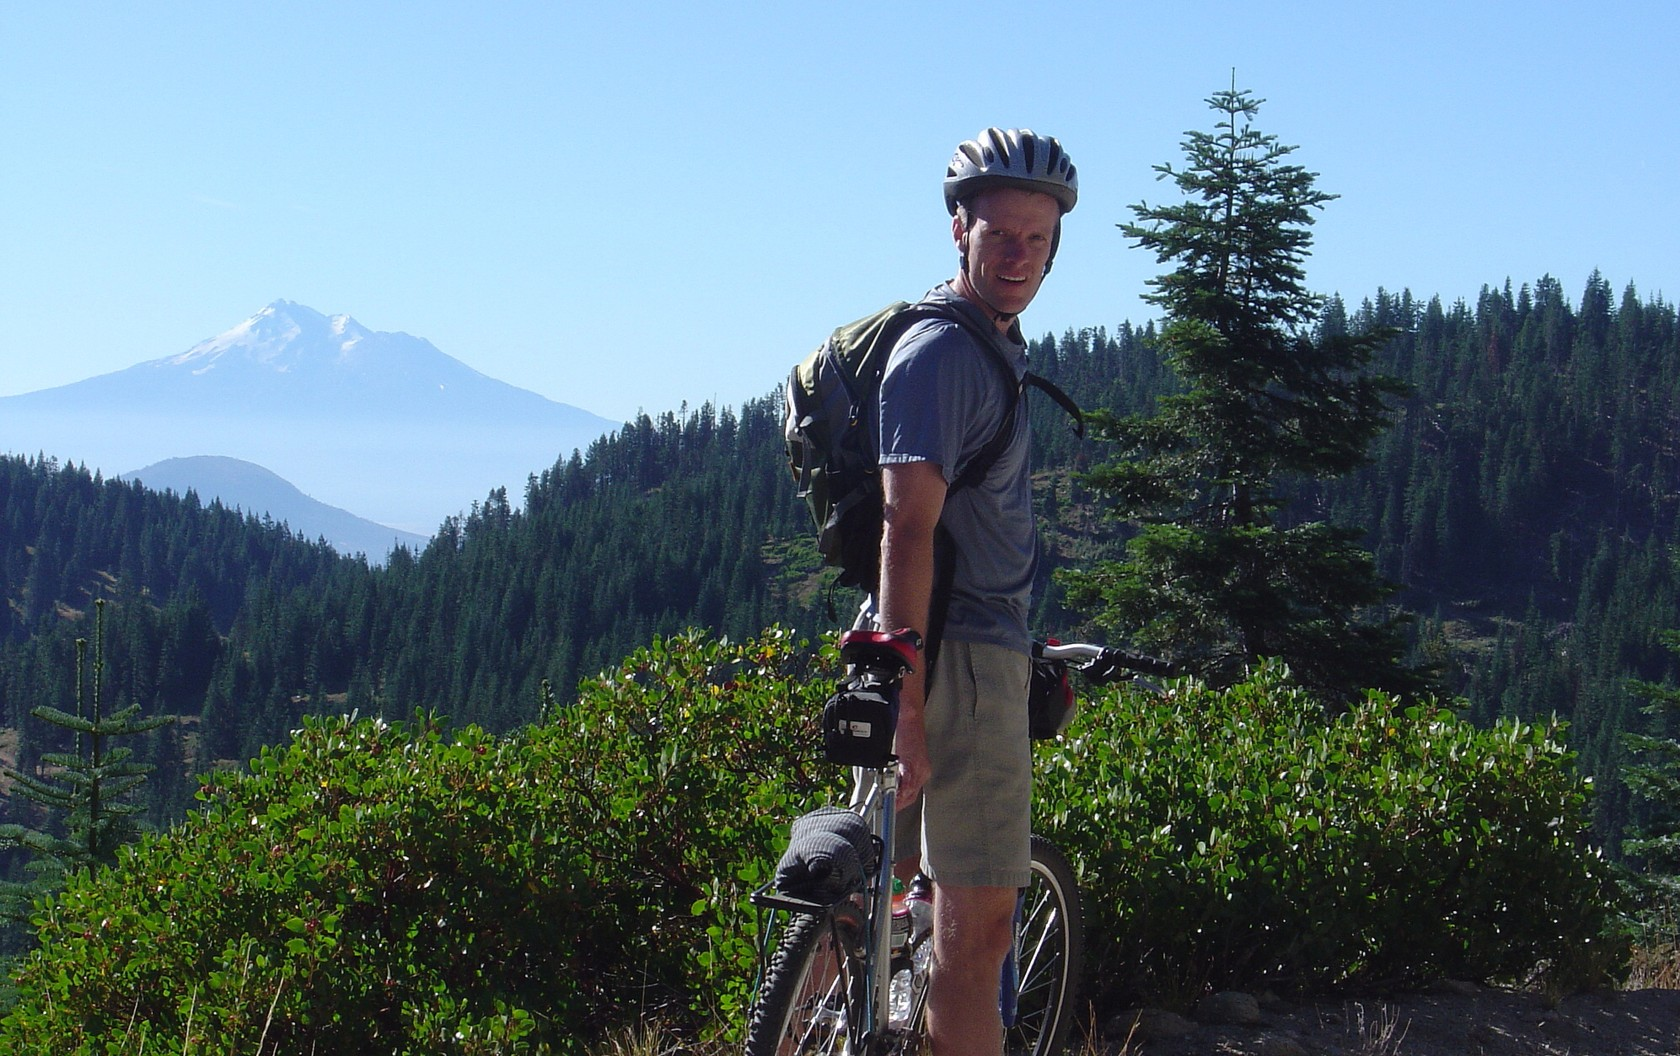 Mountain Biking near Mount Ashland with Mt. Shasta in the background